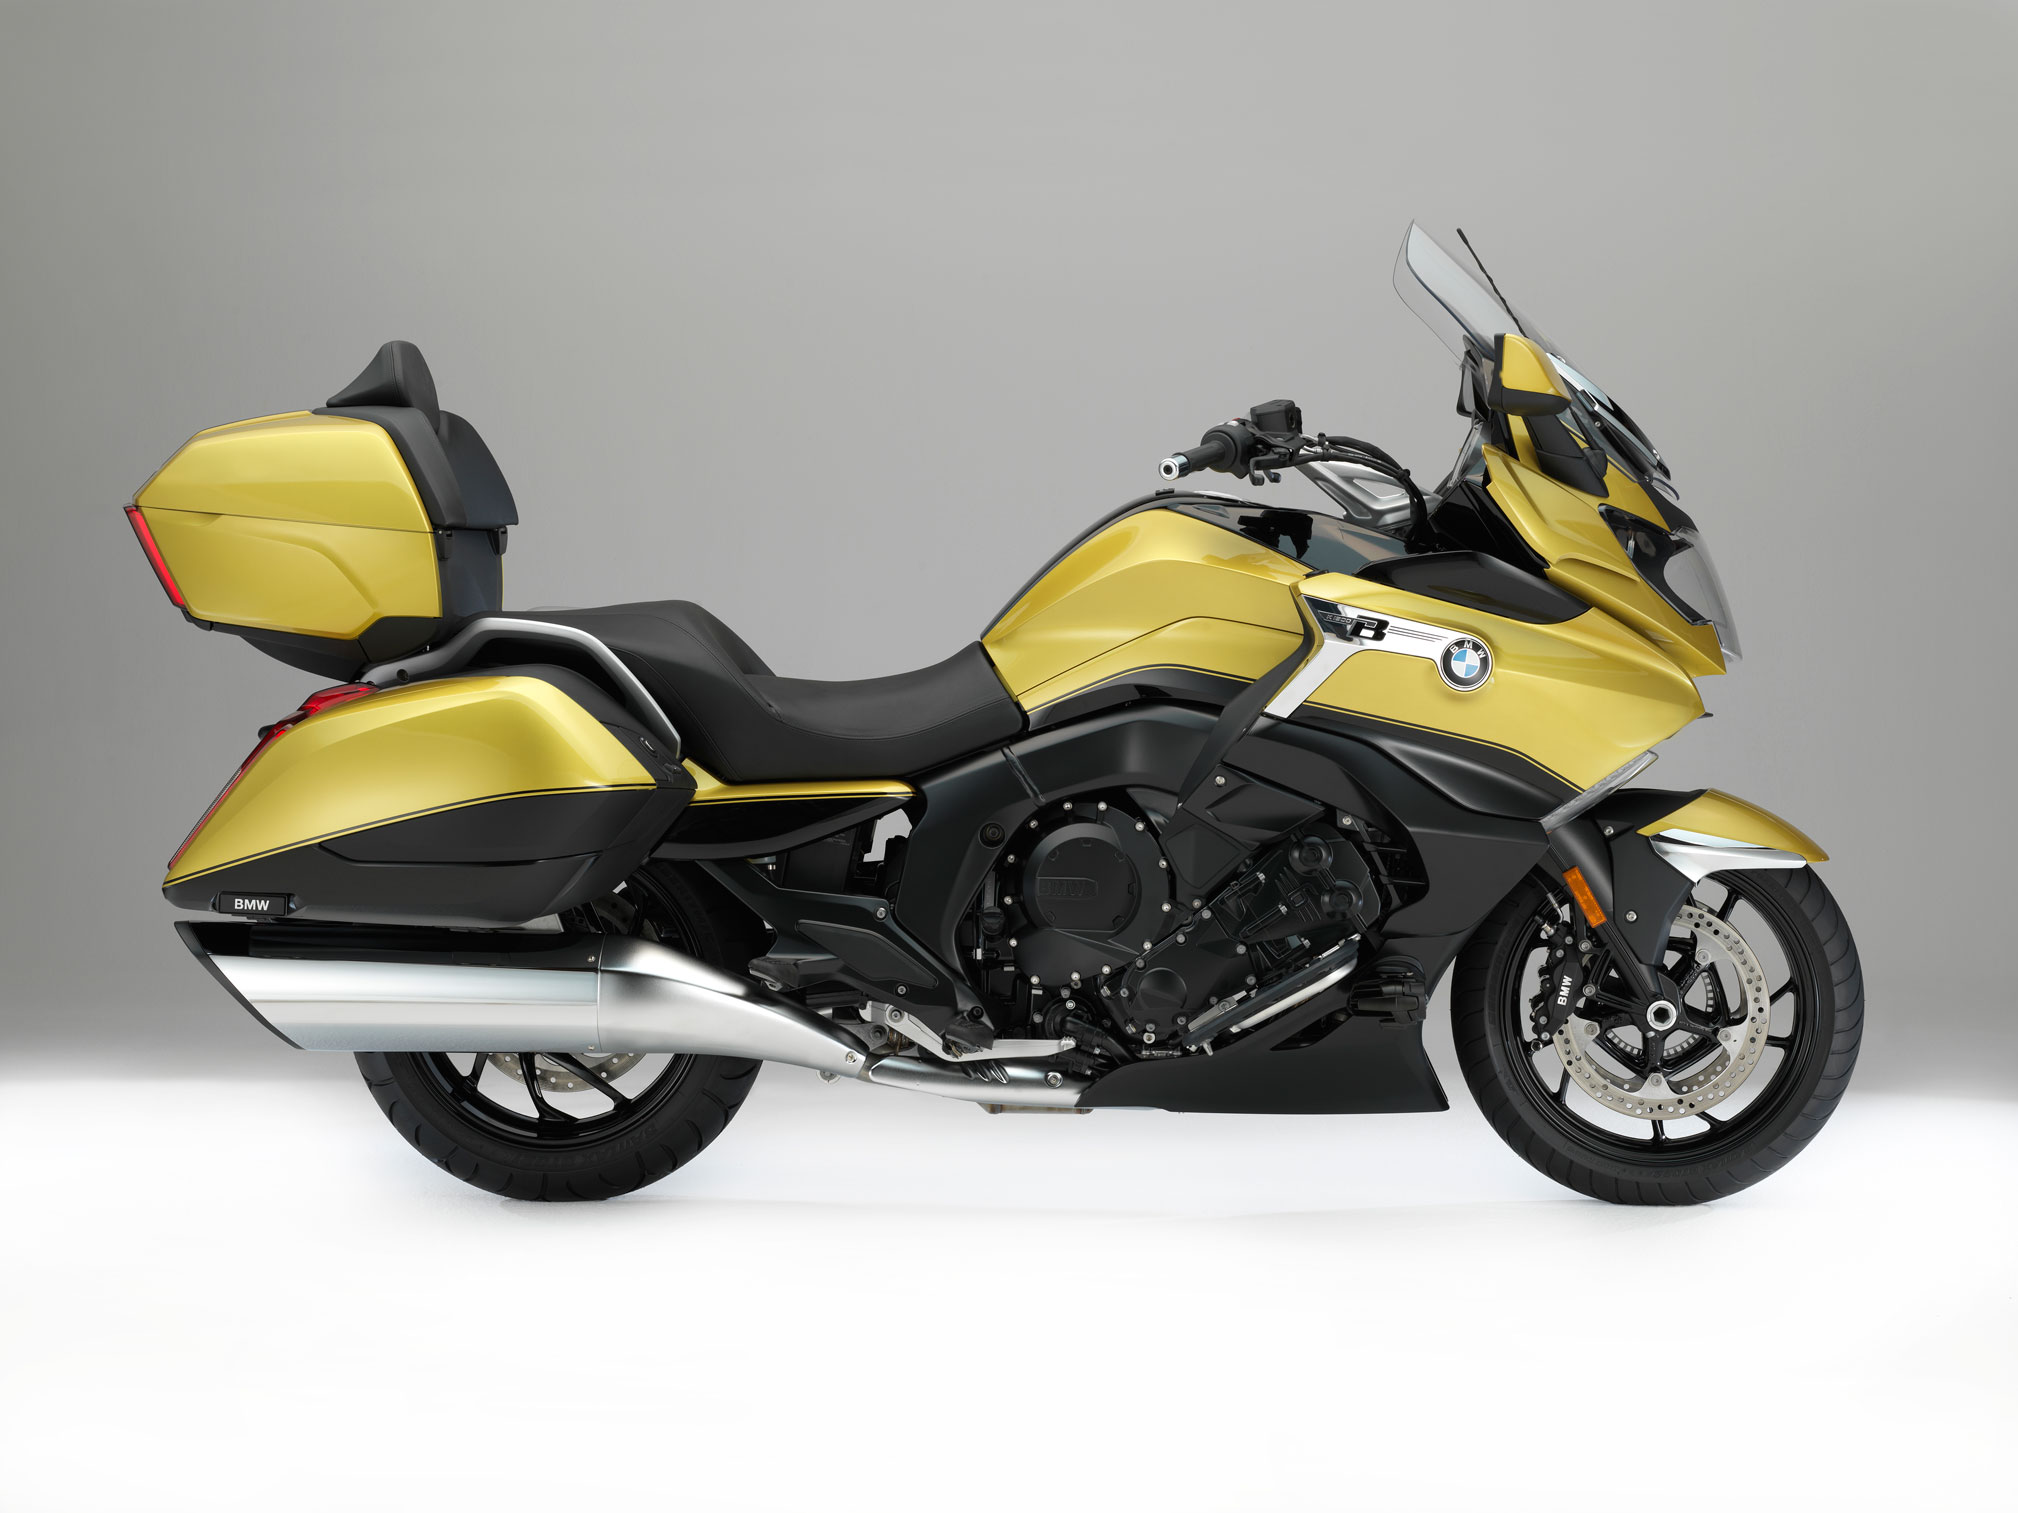 2018 BMW K1600 Grand America Review • Total Motorcycle